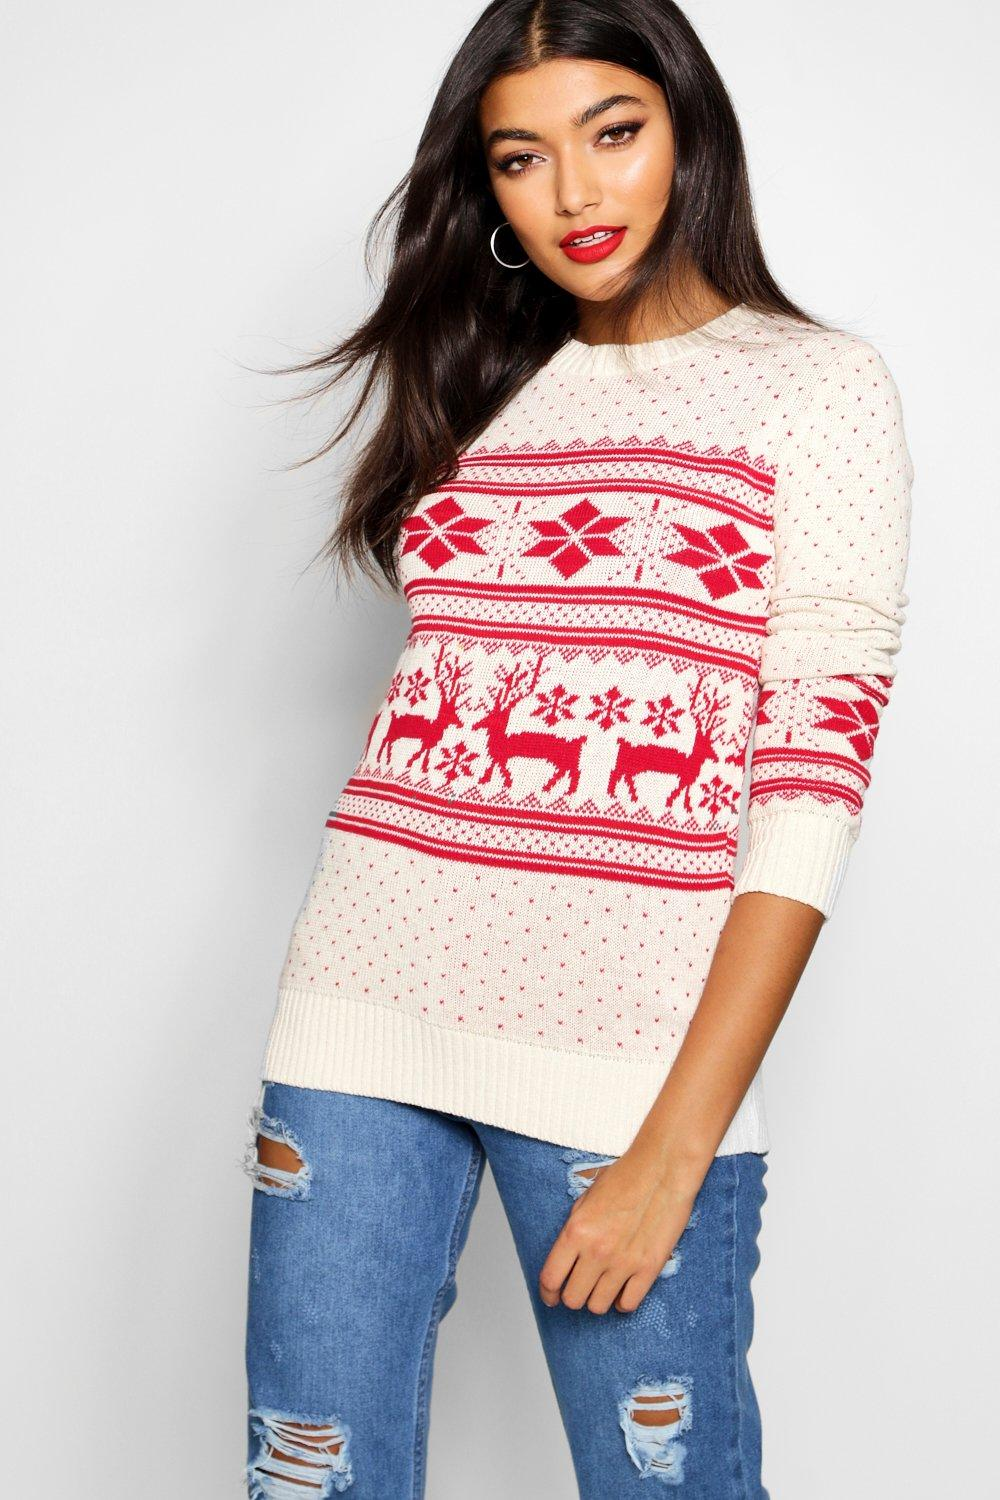 1940s Style Sweaters and Knit Tops Reindeer Fairisle Christmas Jumper  AT vintagedancer.com